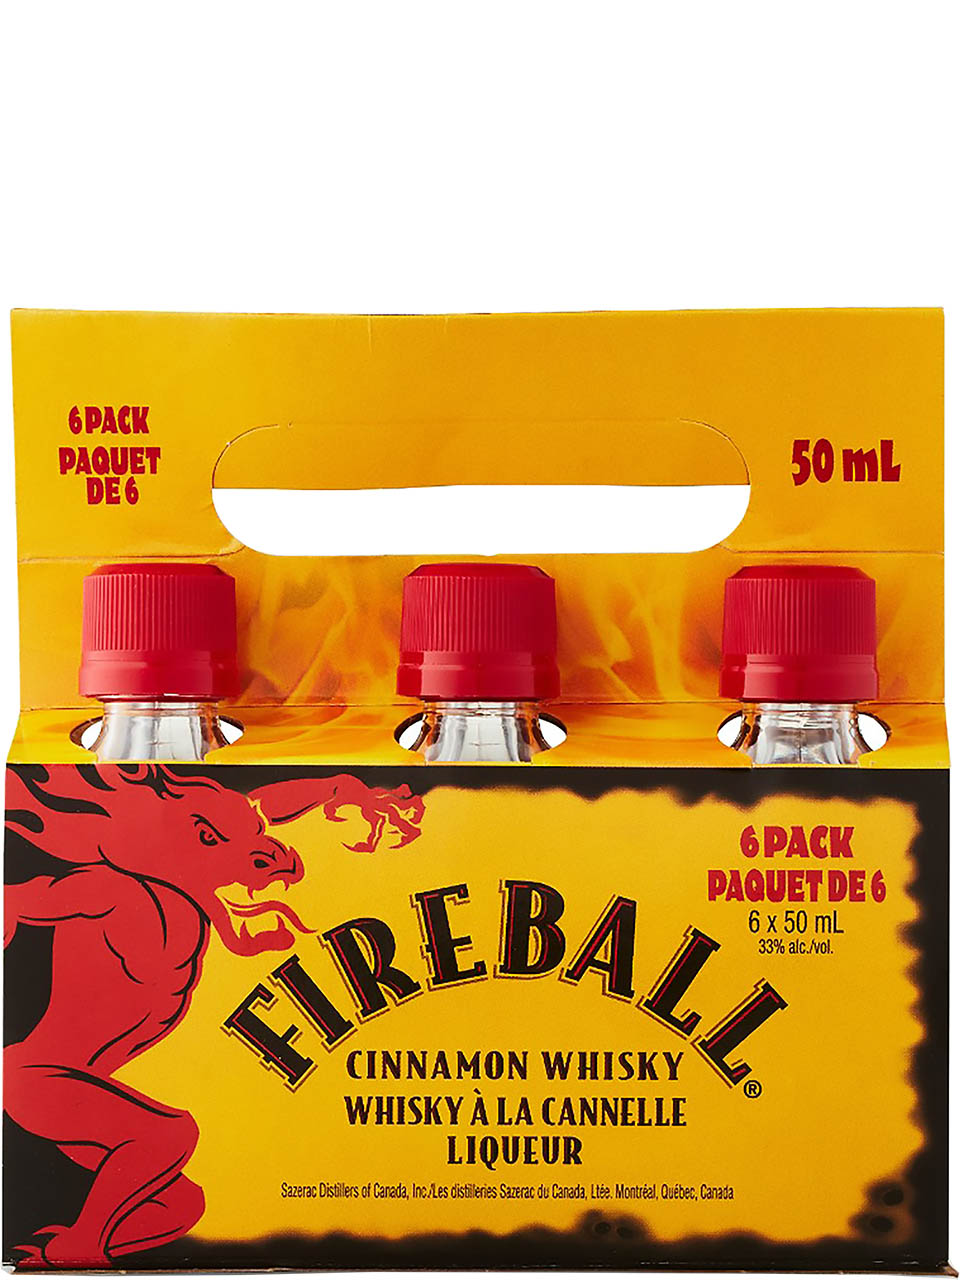 Fireball Cinnamon Whisky Cold Carrier 6 Pack